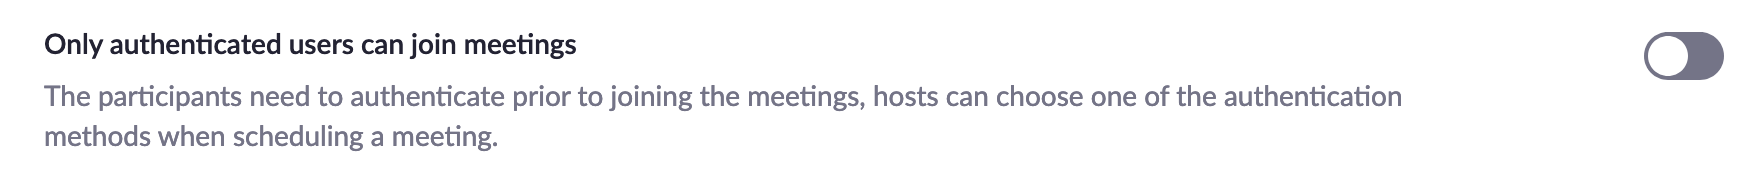 Turn on Only authenticated users can join meetings